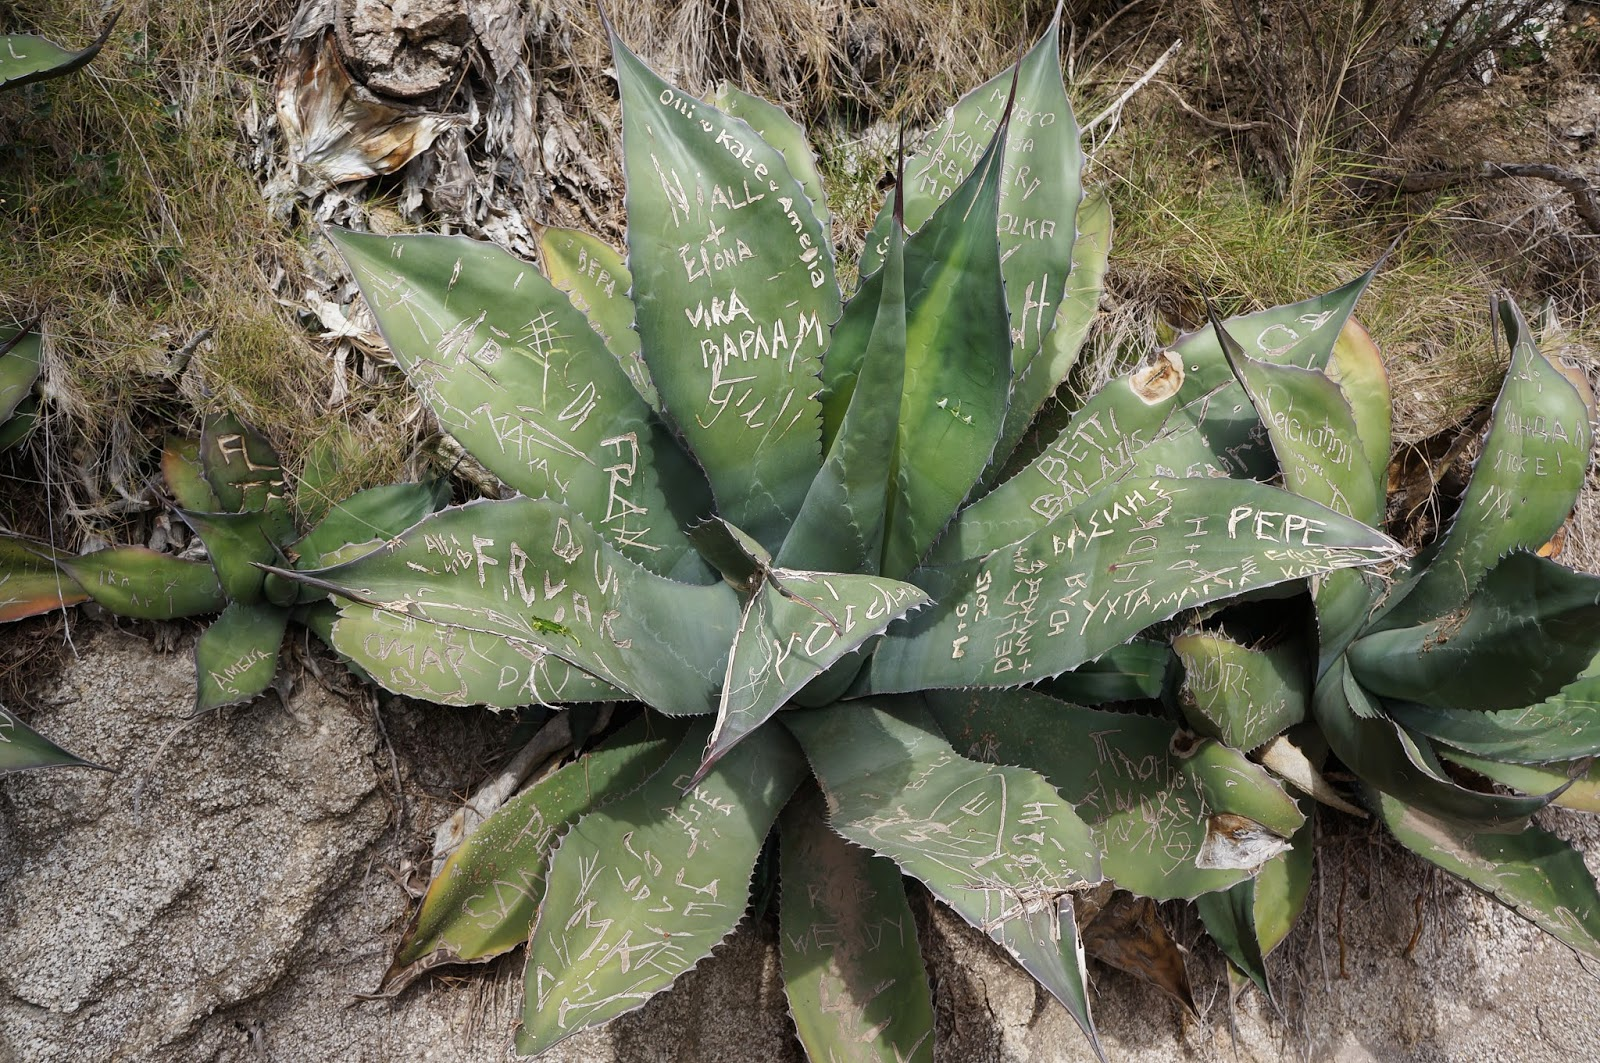 Yucca desert plant with graffiti carved names